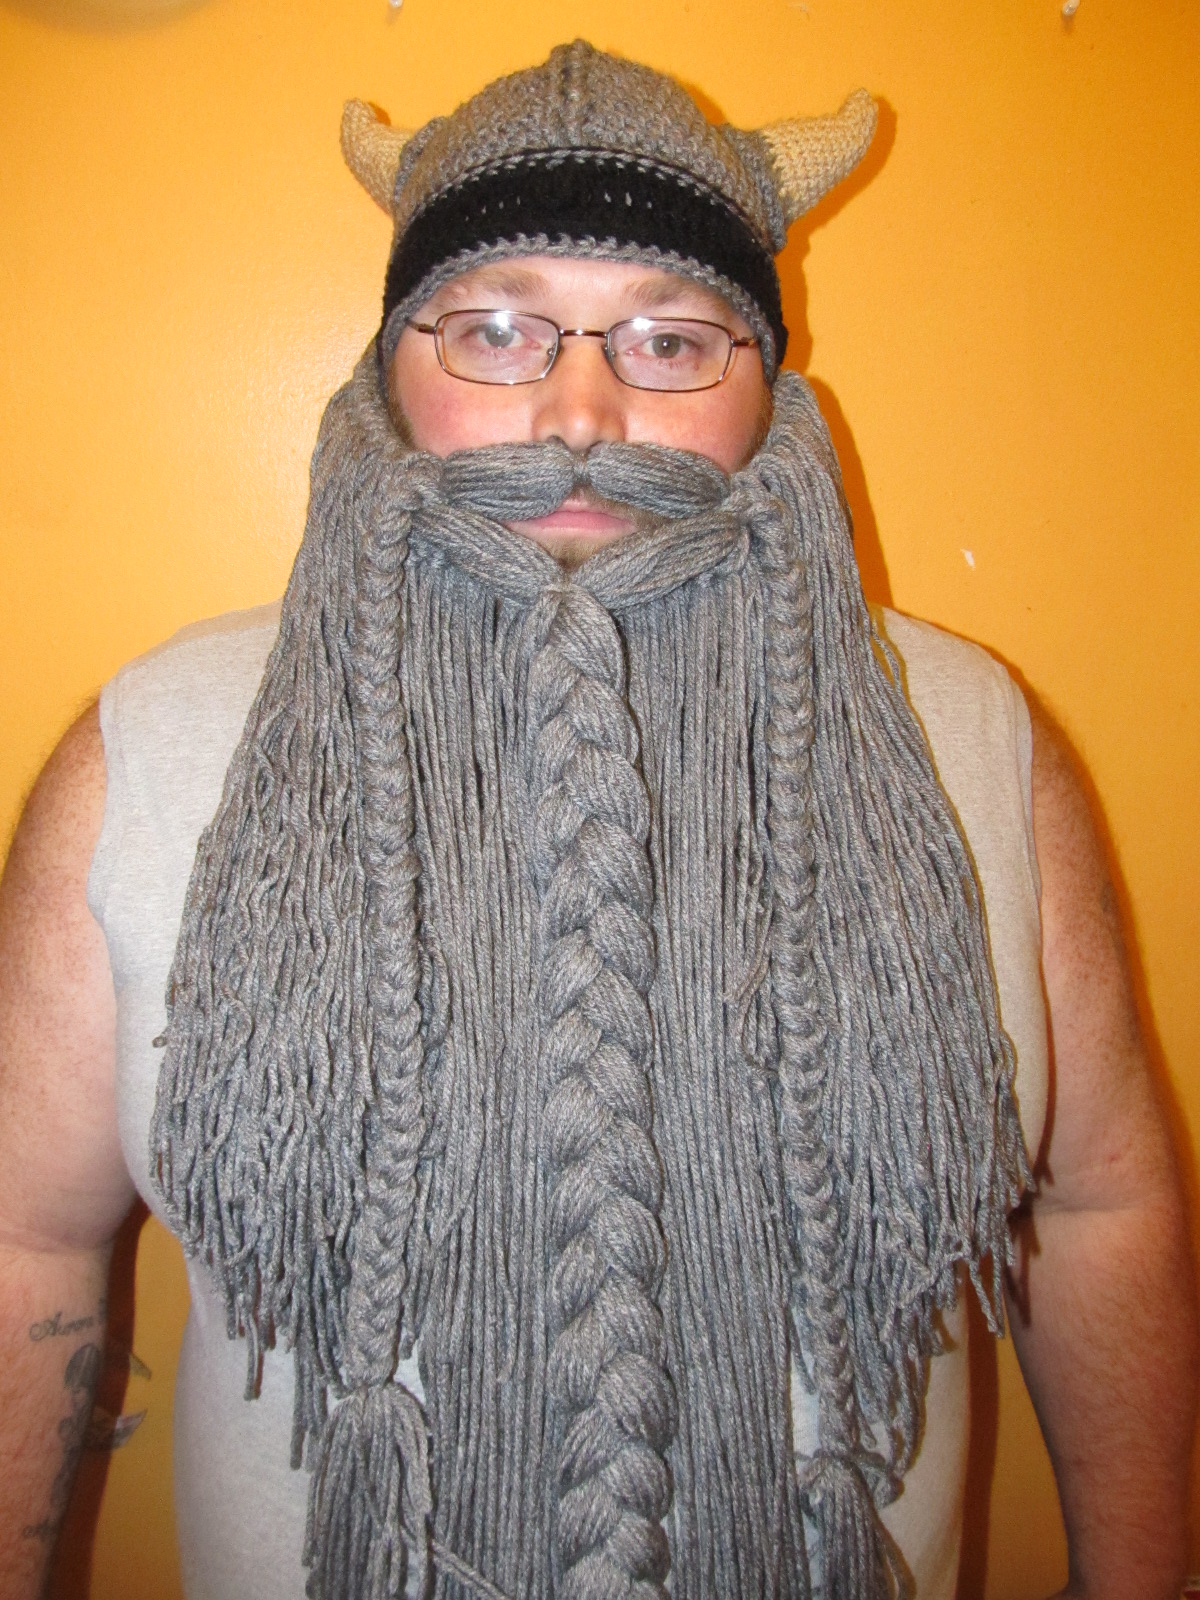 The beard pattern is a free pattern that I changed up 43f10666236